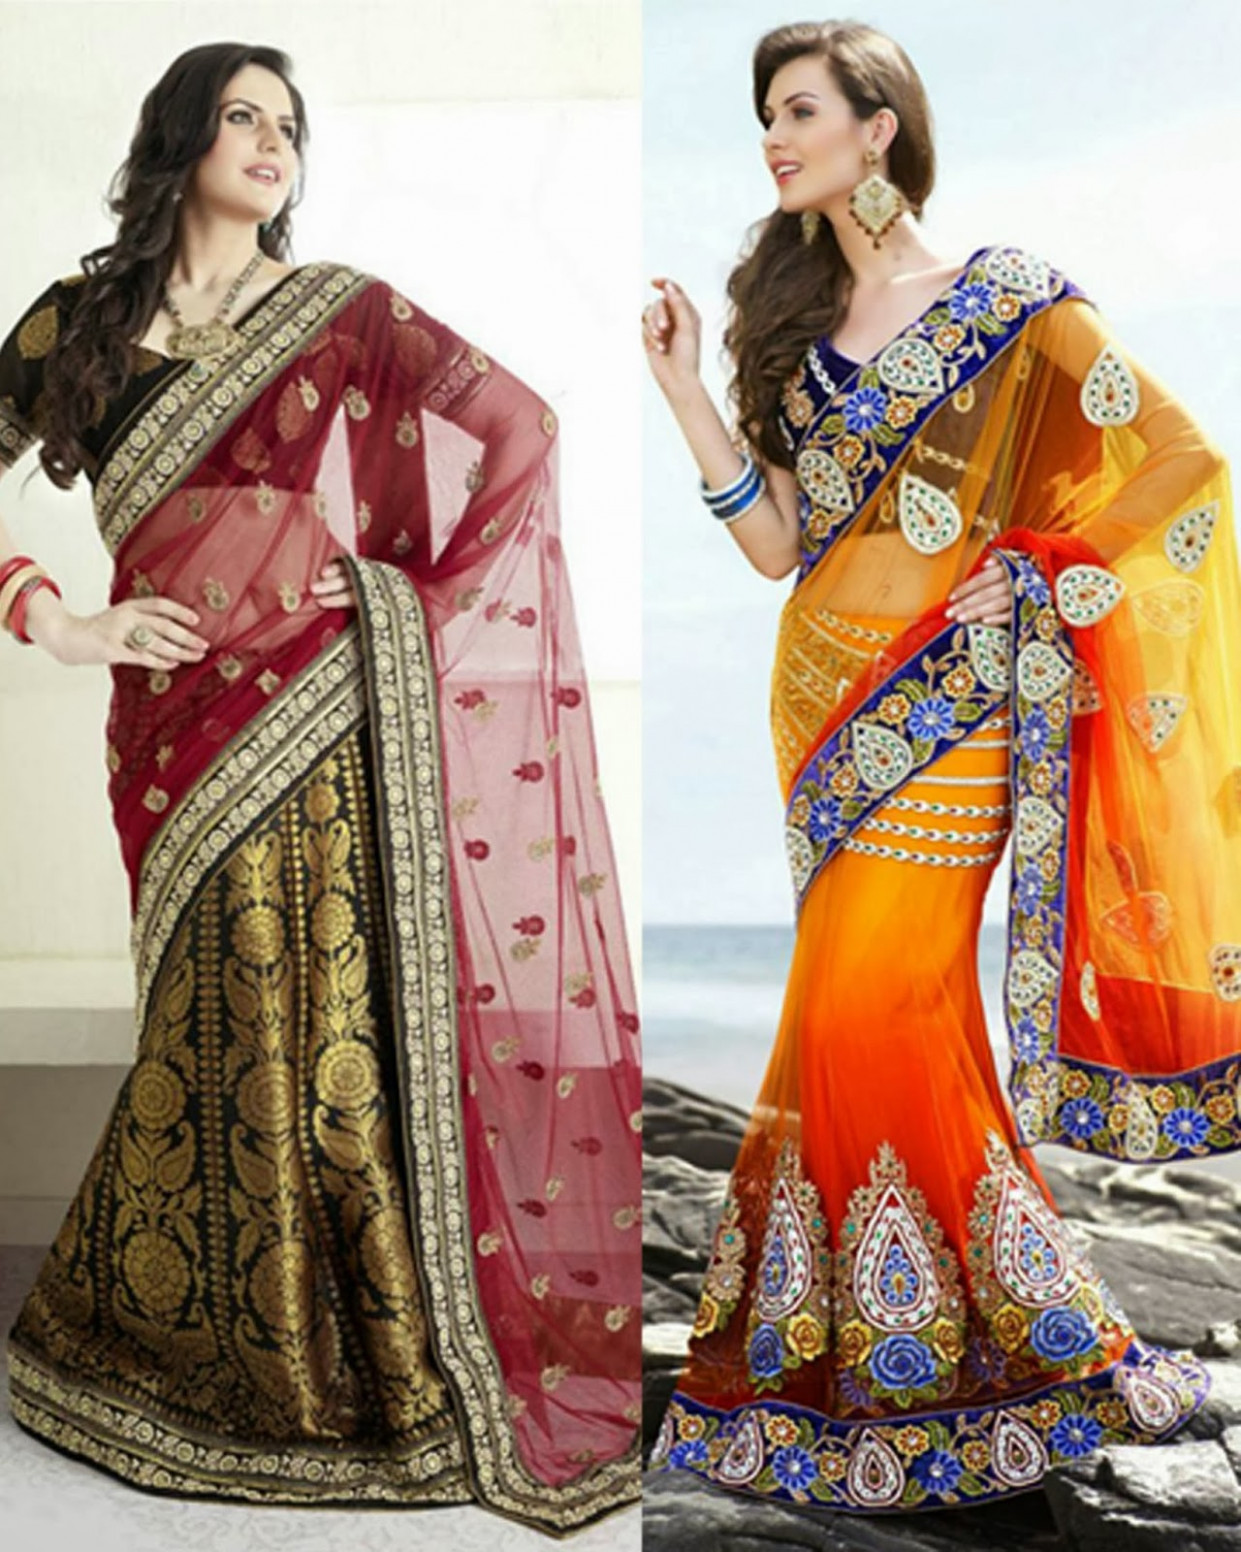 Pakistani Fashion,Indian Fashion,International Fashion